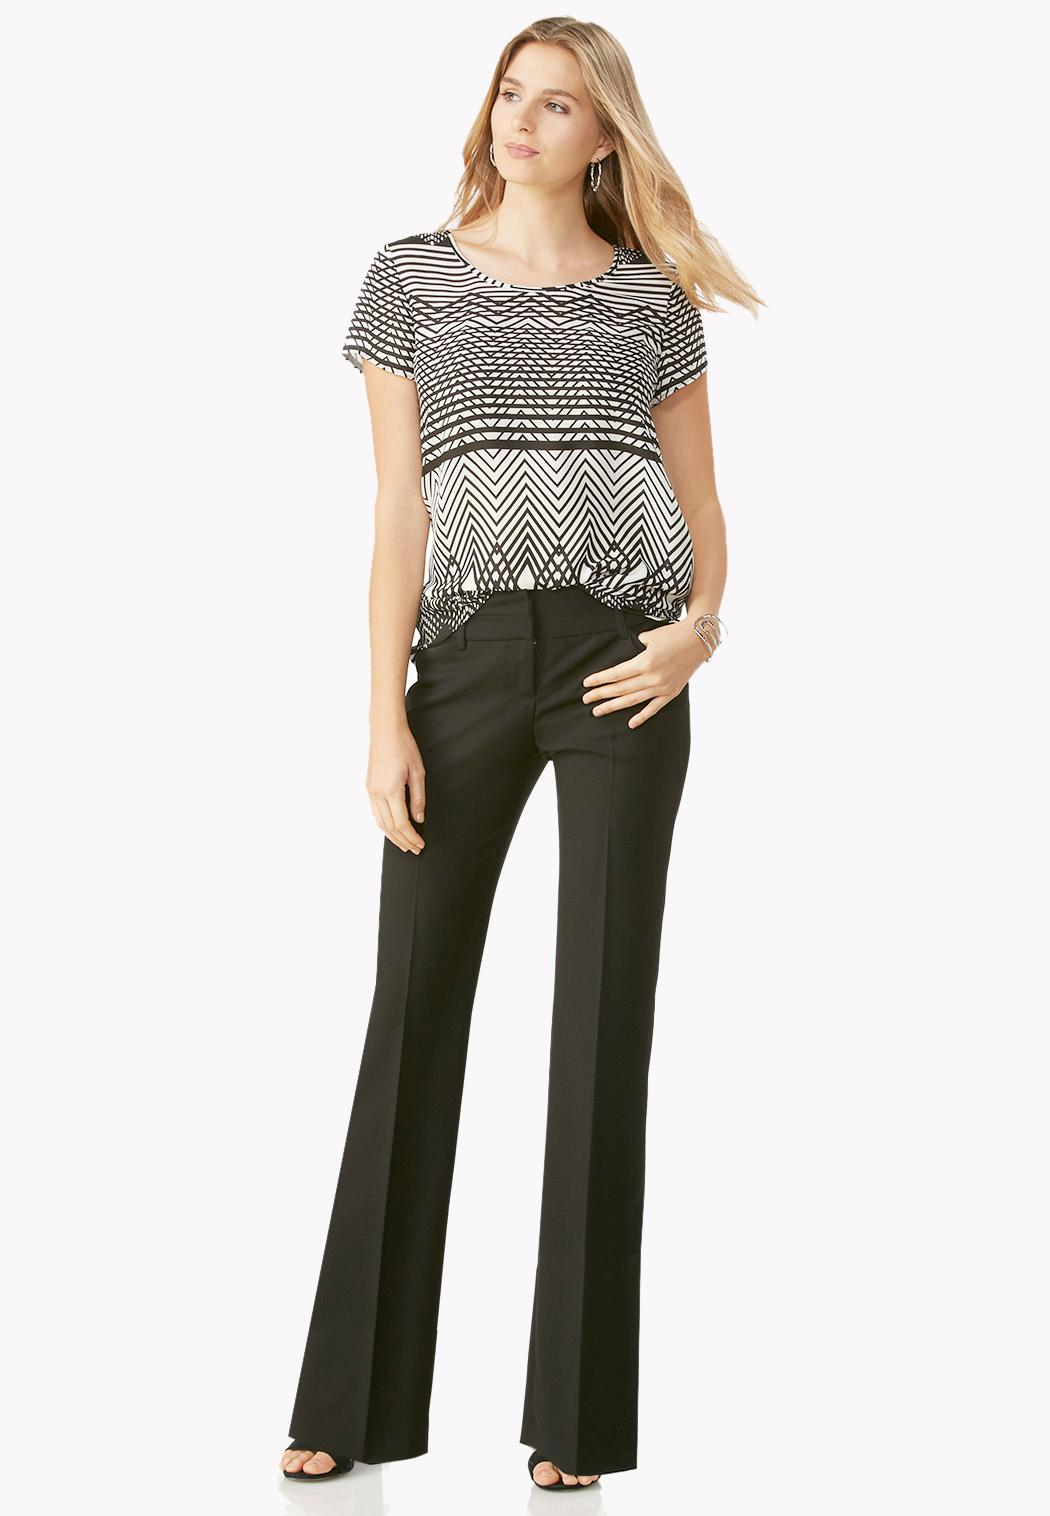 Contemporary Fit Essential Trousers (Item #37638707)